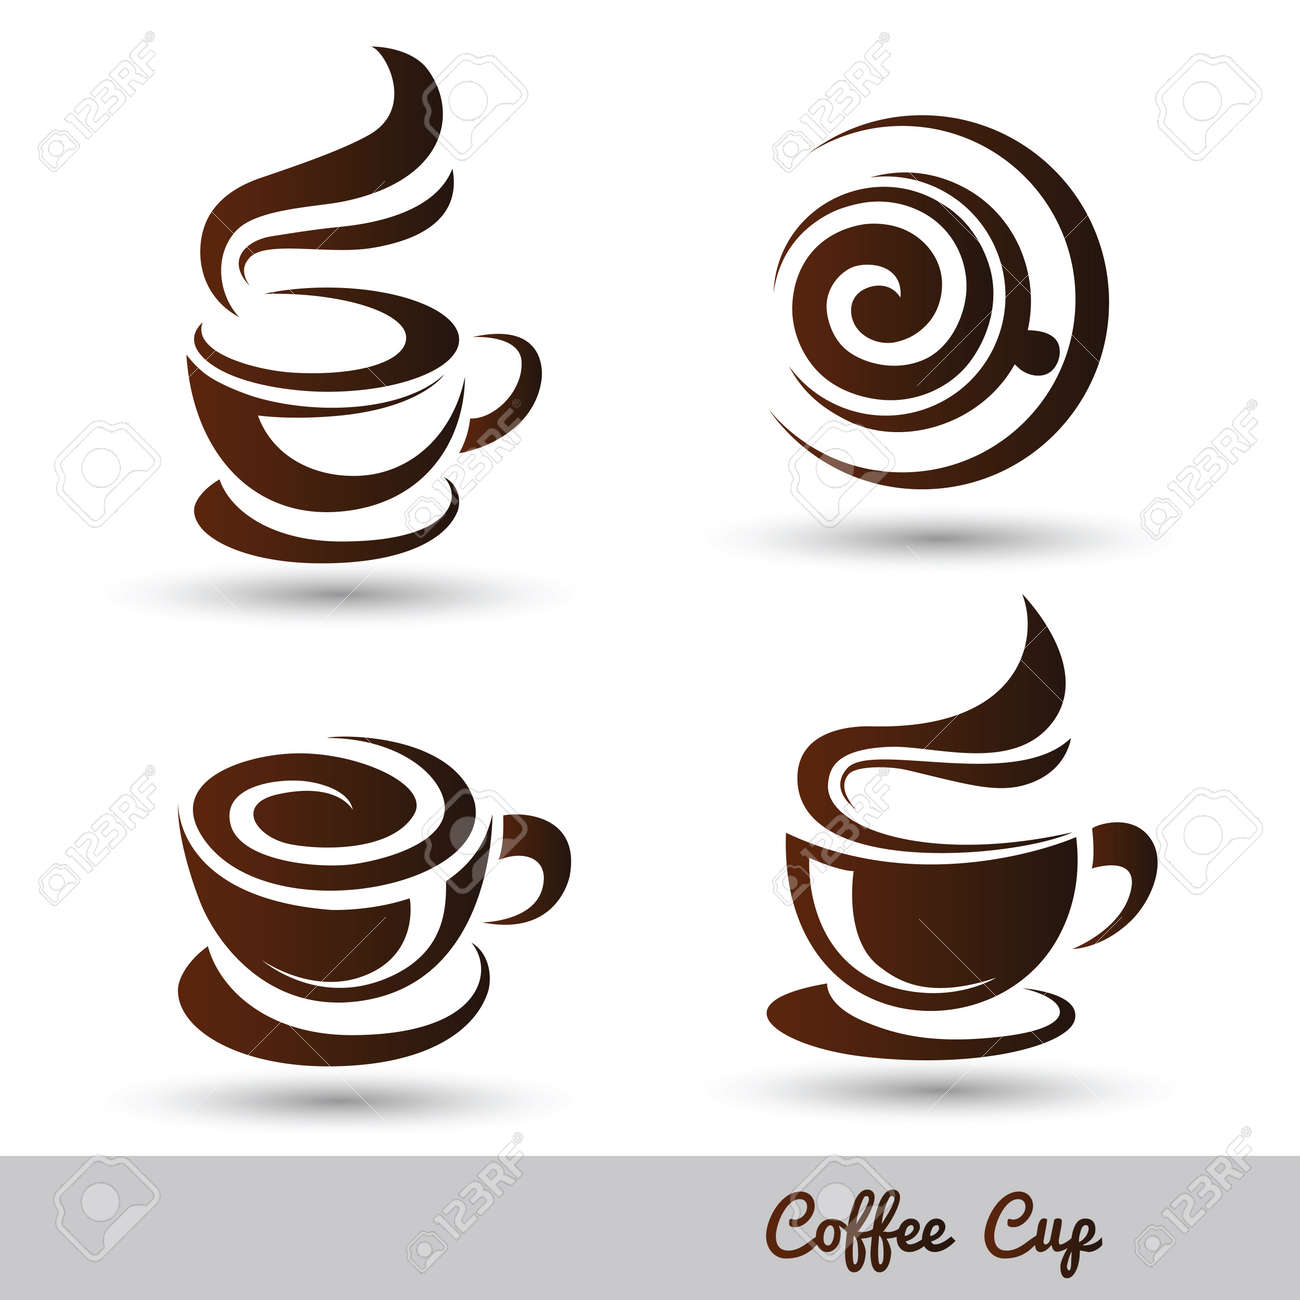 Coffee cup vector free - Coffee Cup Set Vector Illustration Stock Vector 47914118